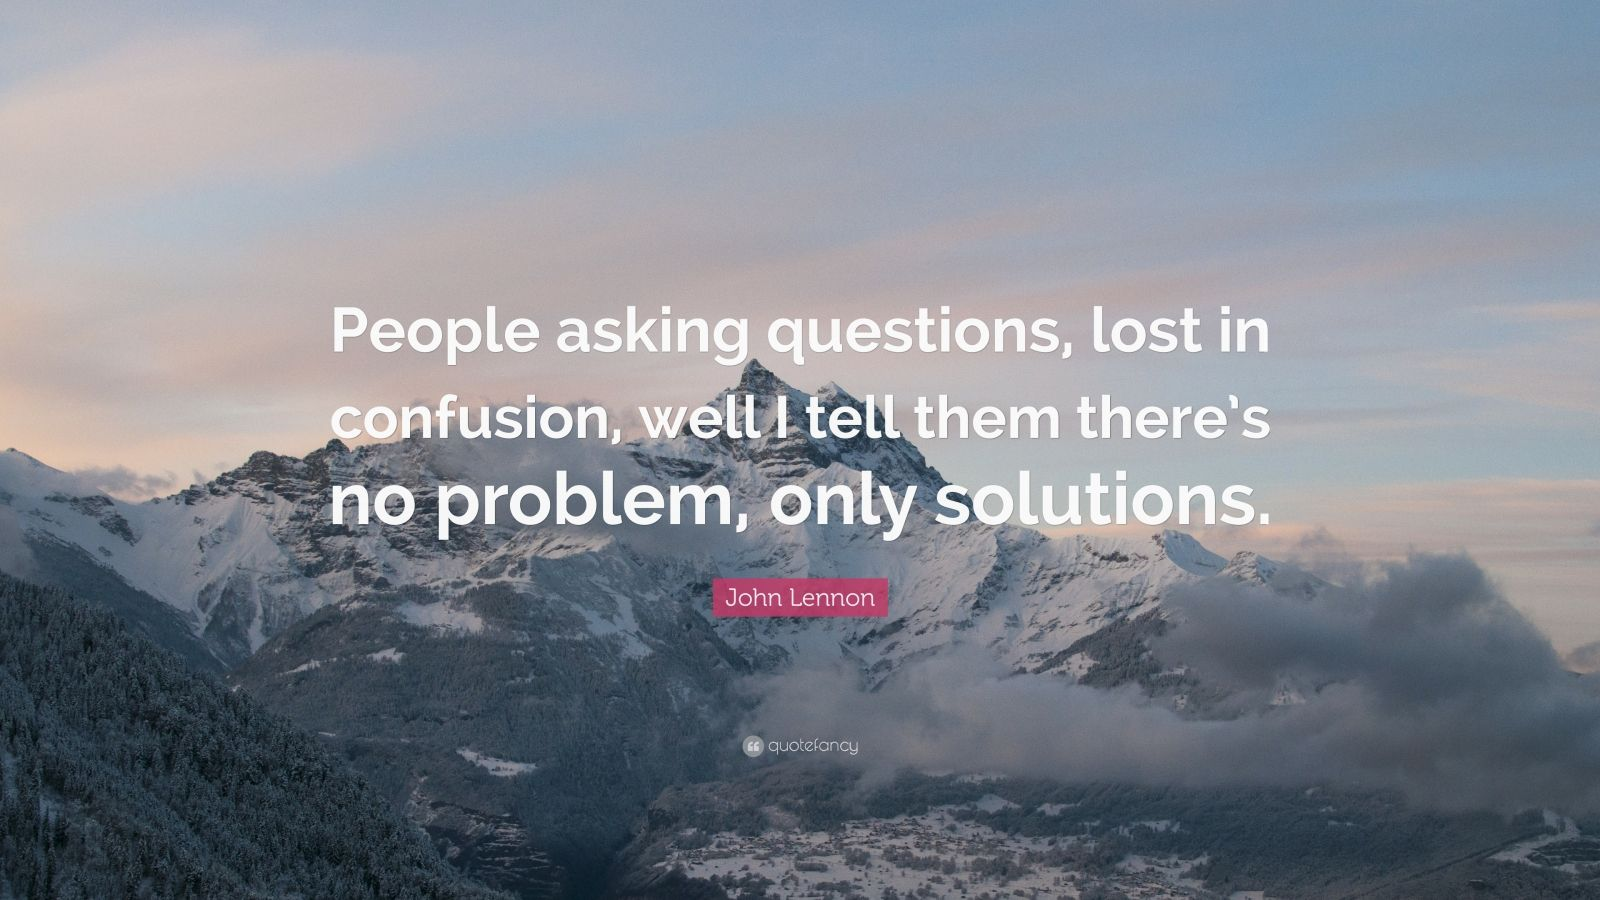 """John Lennon Quote: """"People asking questions, lost in confusion, well I tell them there's no problem, only solutions."""""""